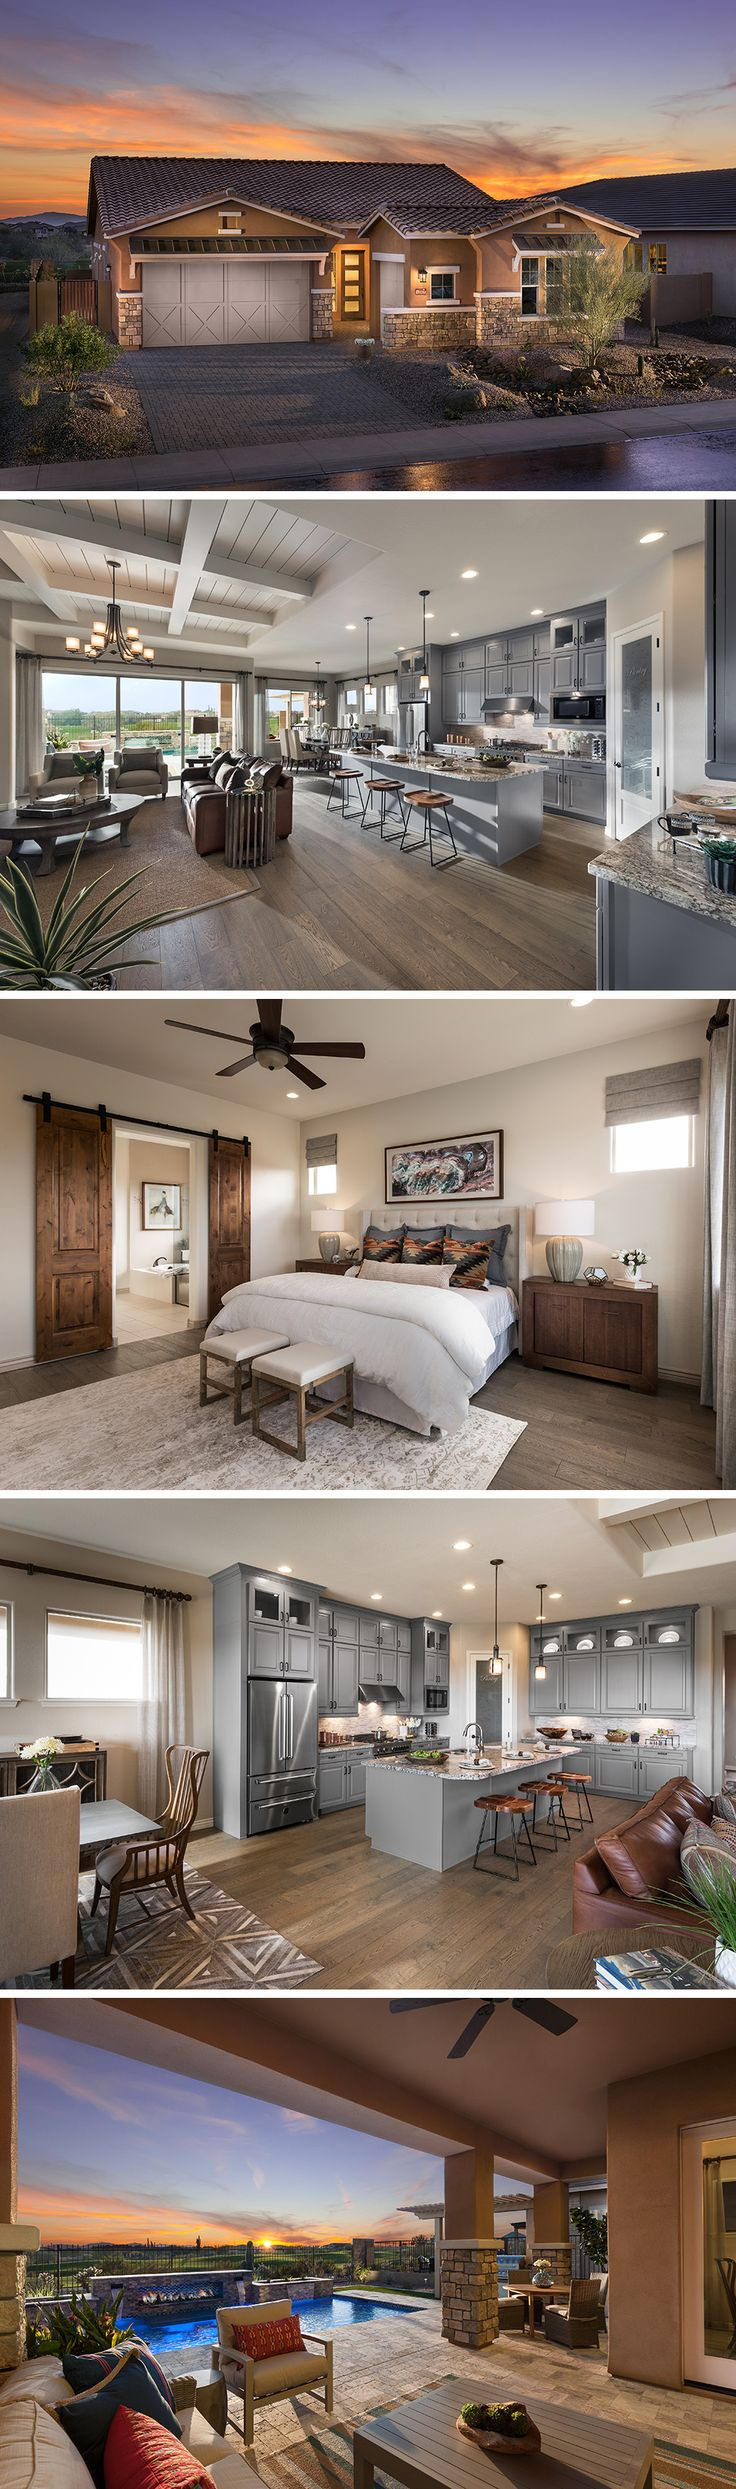 The Havasu Is One Of Many Available Homes In Greens At Blackstone Located